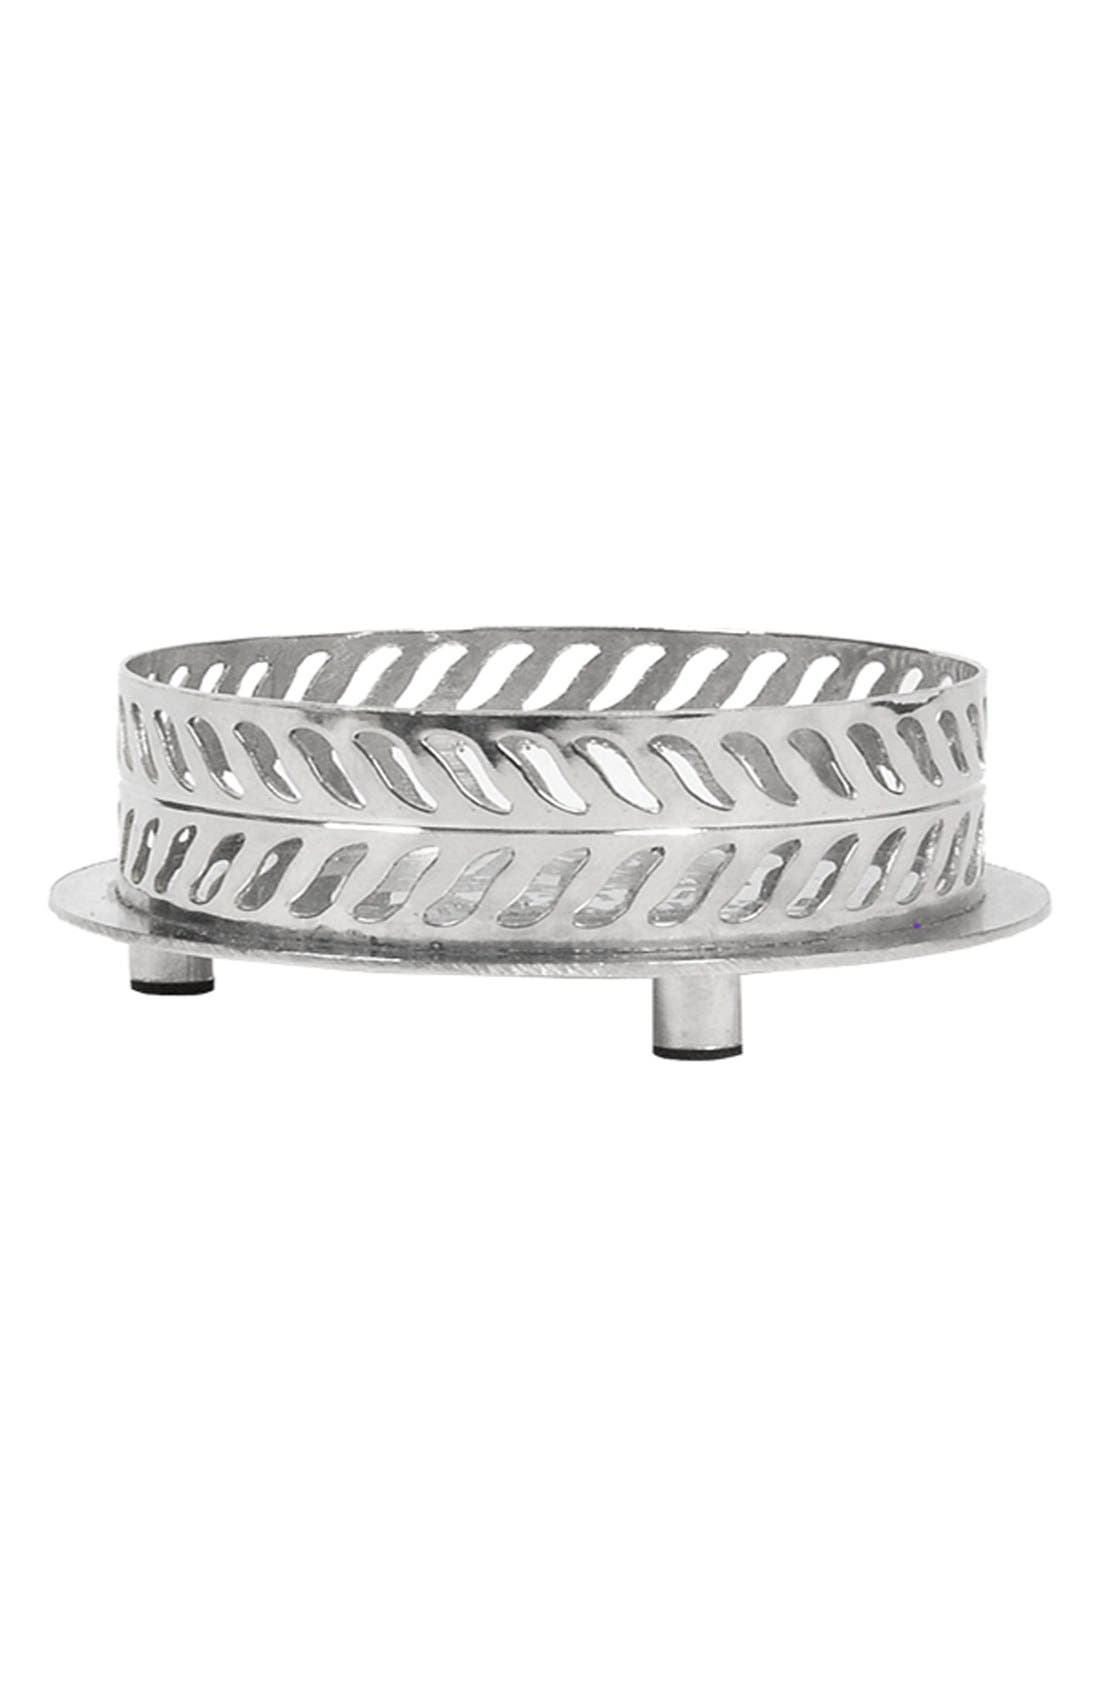 Nickel Home Ambiance Diffuser Tray,                             Alternate thumbnail 2, color,                             NO COLOR